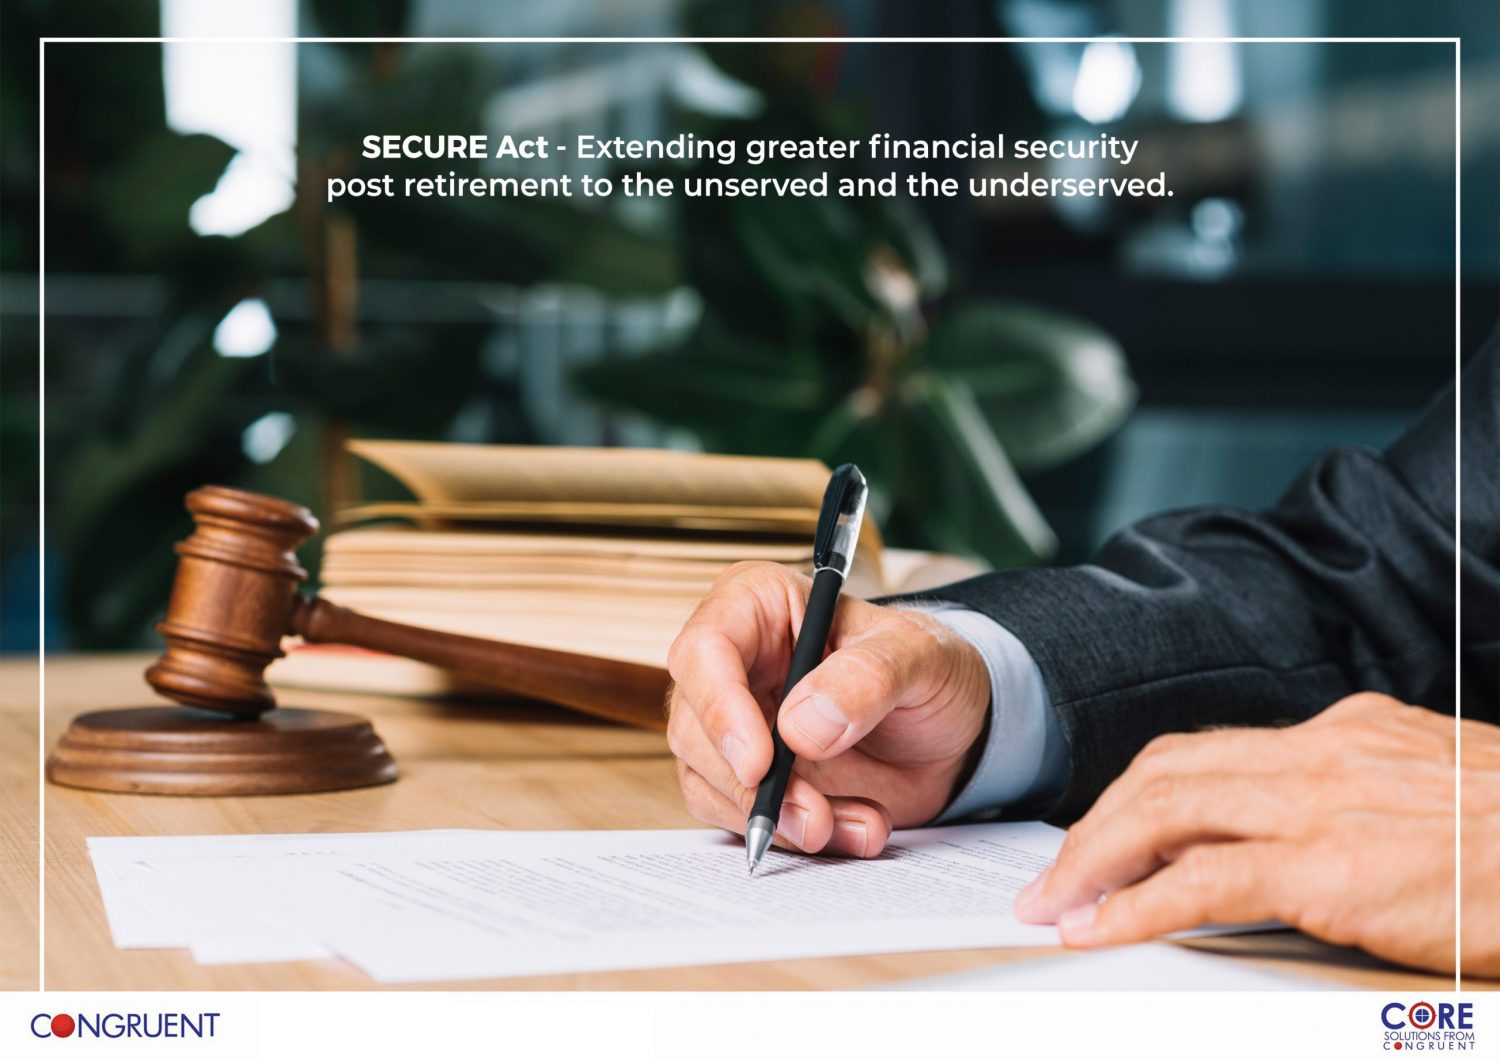 The SECURE Act for Greater Financial Security